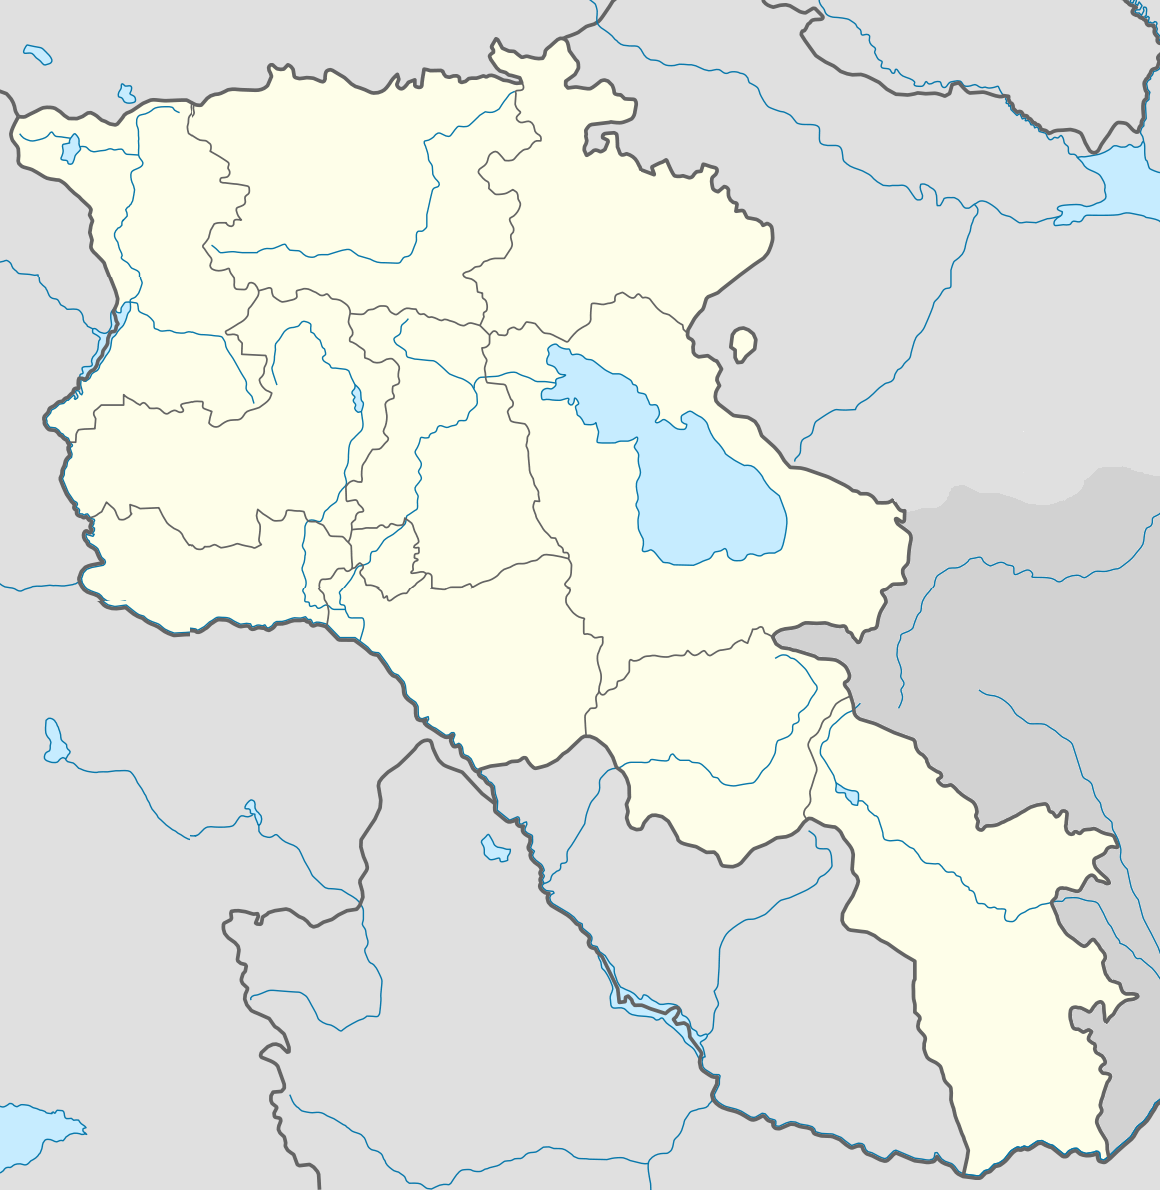 Location_map_of_Armenia_with_NKR.png